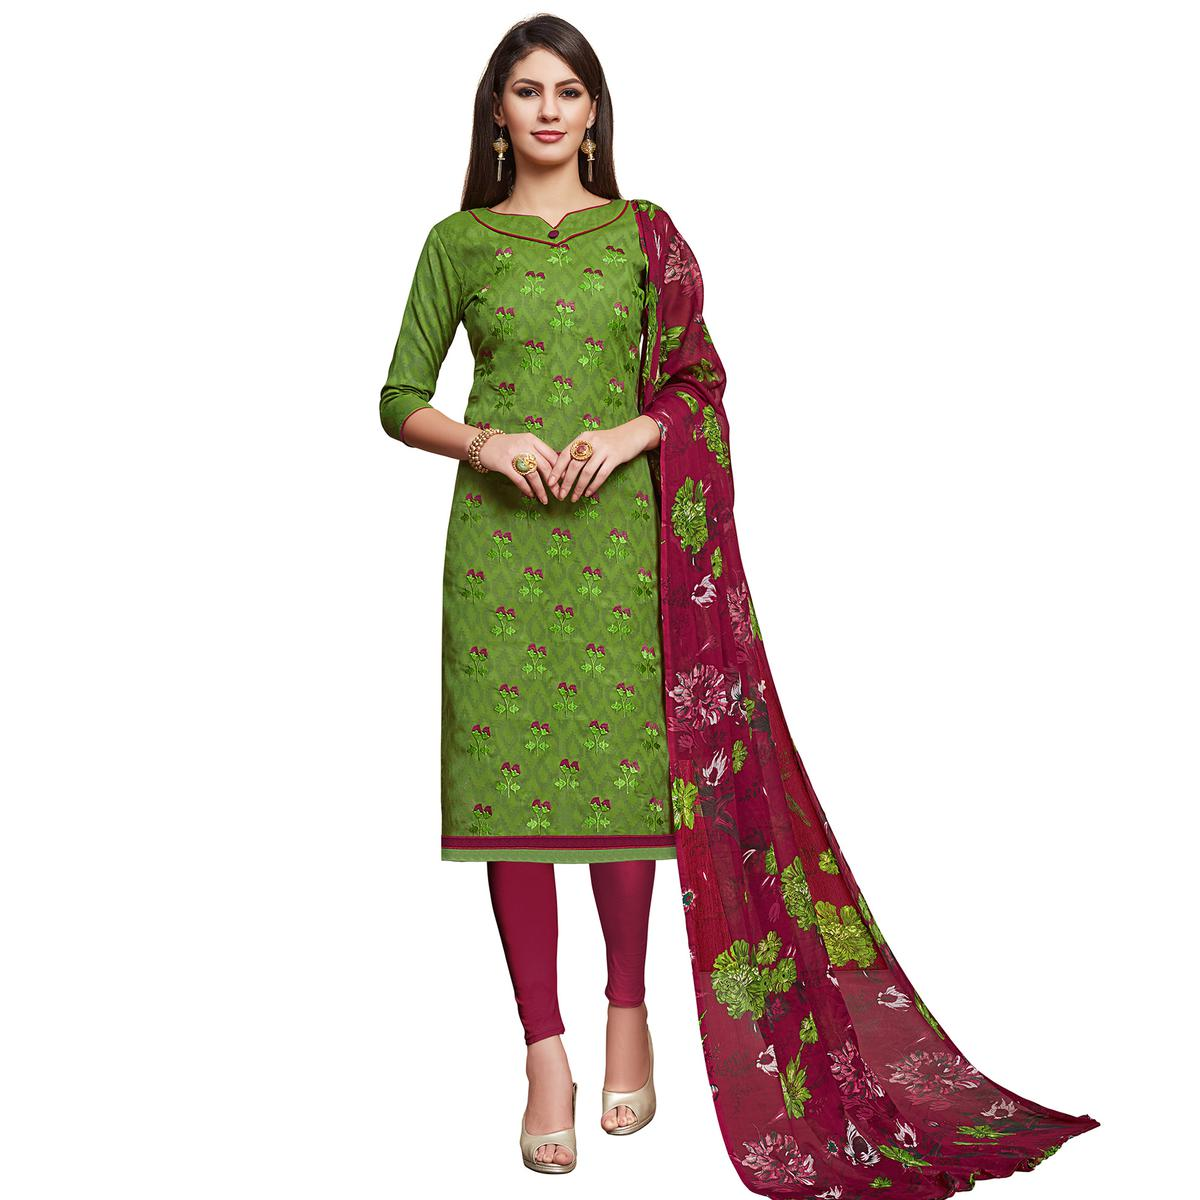 Gleaming Light Green Colored Partywear Embroidered Jacquard Dress Material